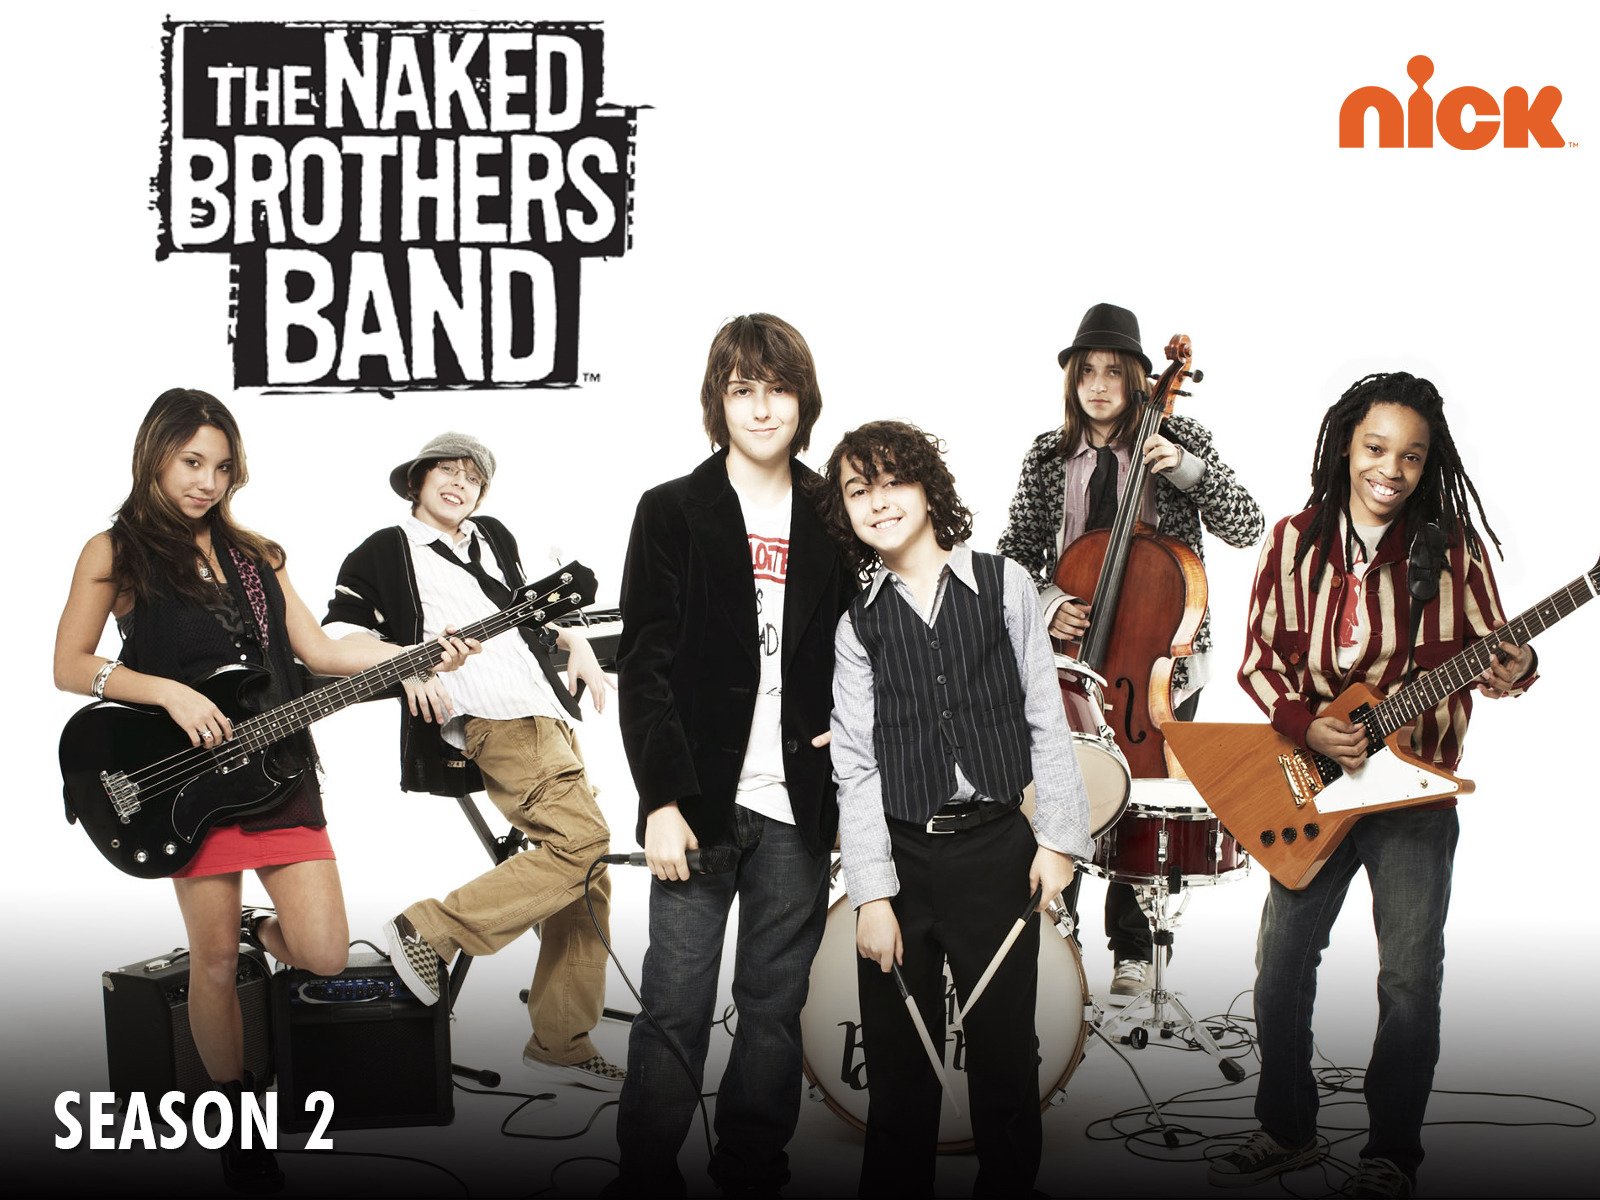 Naked brothers band episode